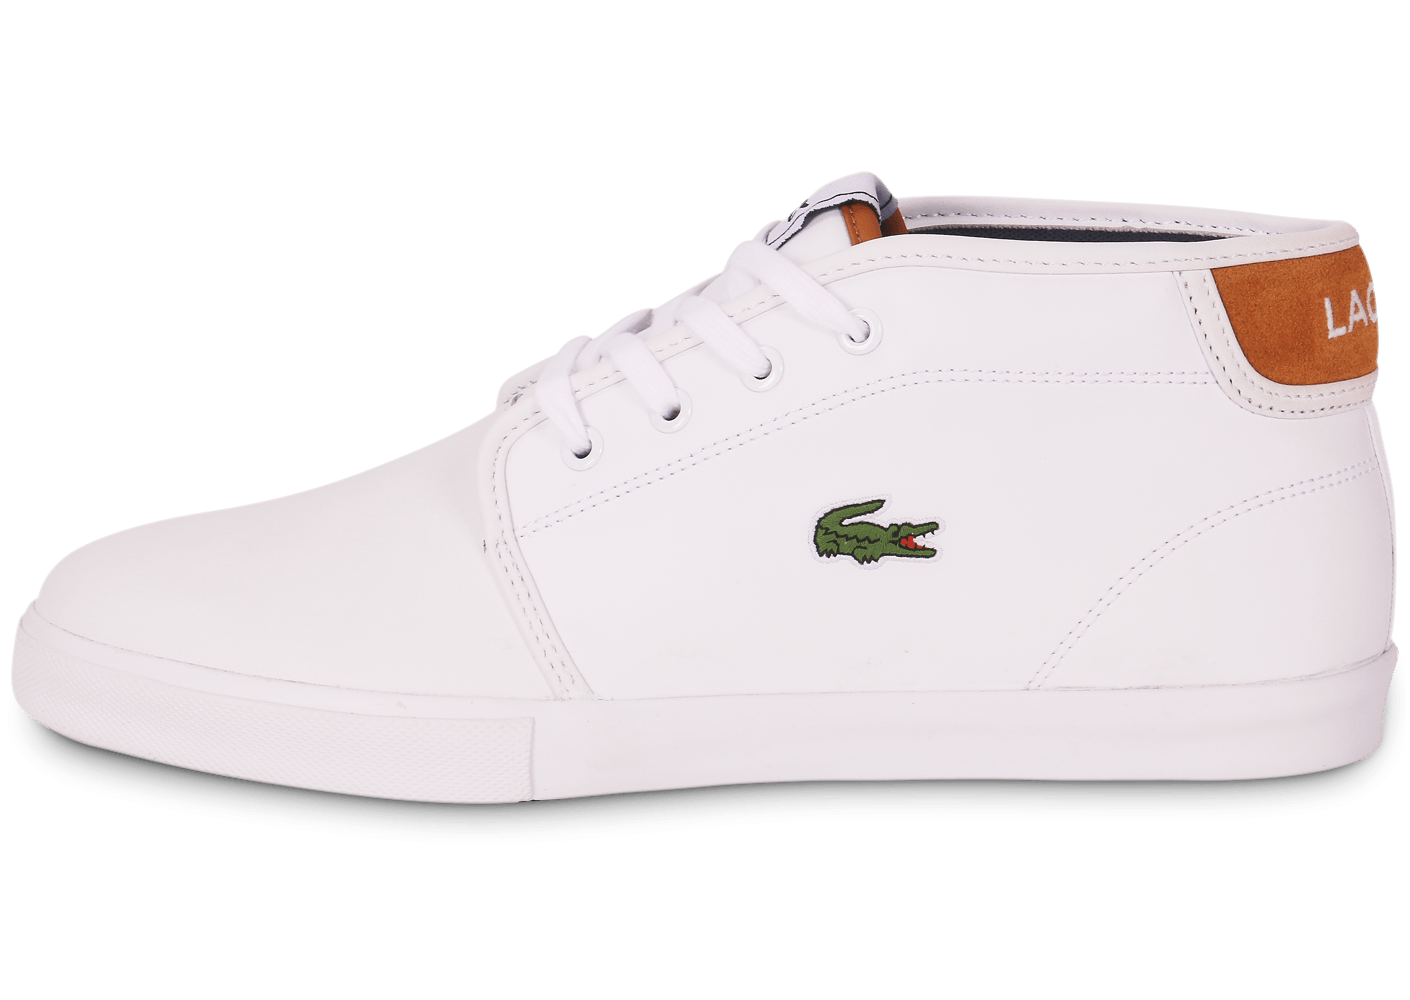 Homme Blanches Tflck31j Baskets Baskets Lacoste Blanches Baskets Blanches Lacoste Homme Tflck31j N0w8Onvm